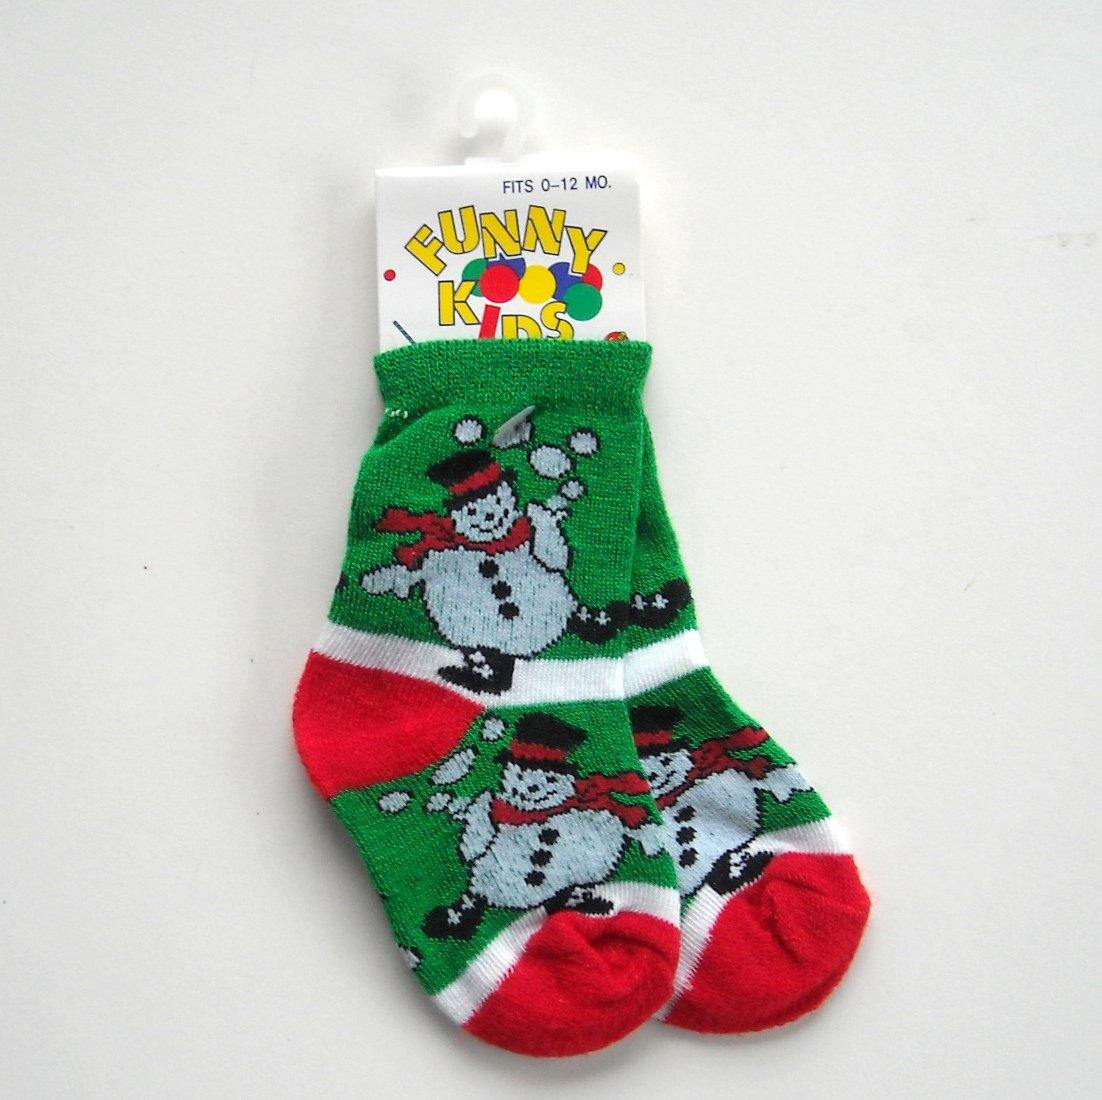 Funny Kids baby booties Snowman socks 0 - 12 month NWT